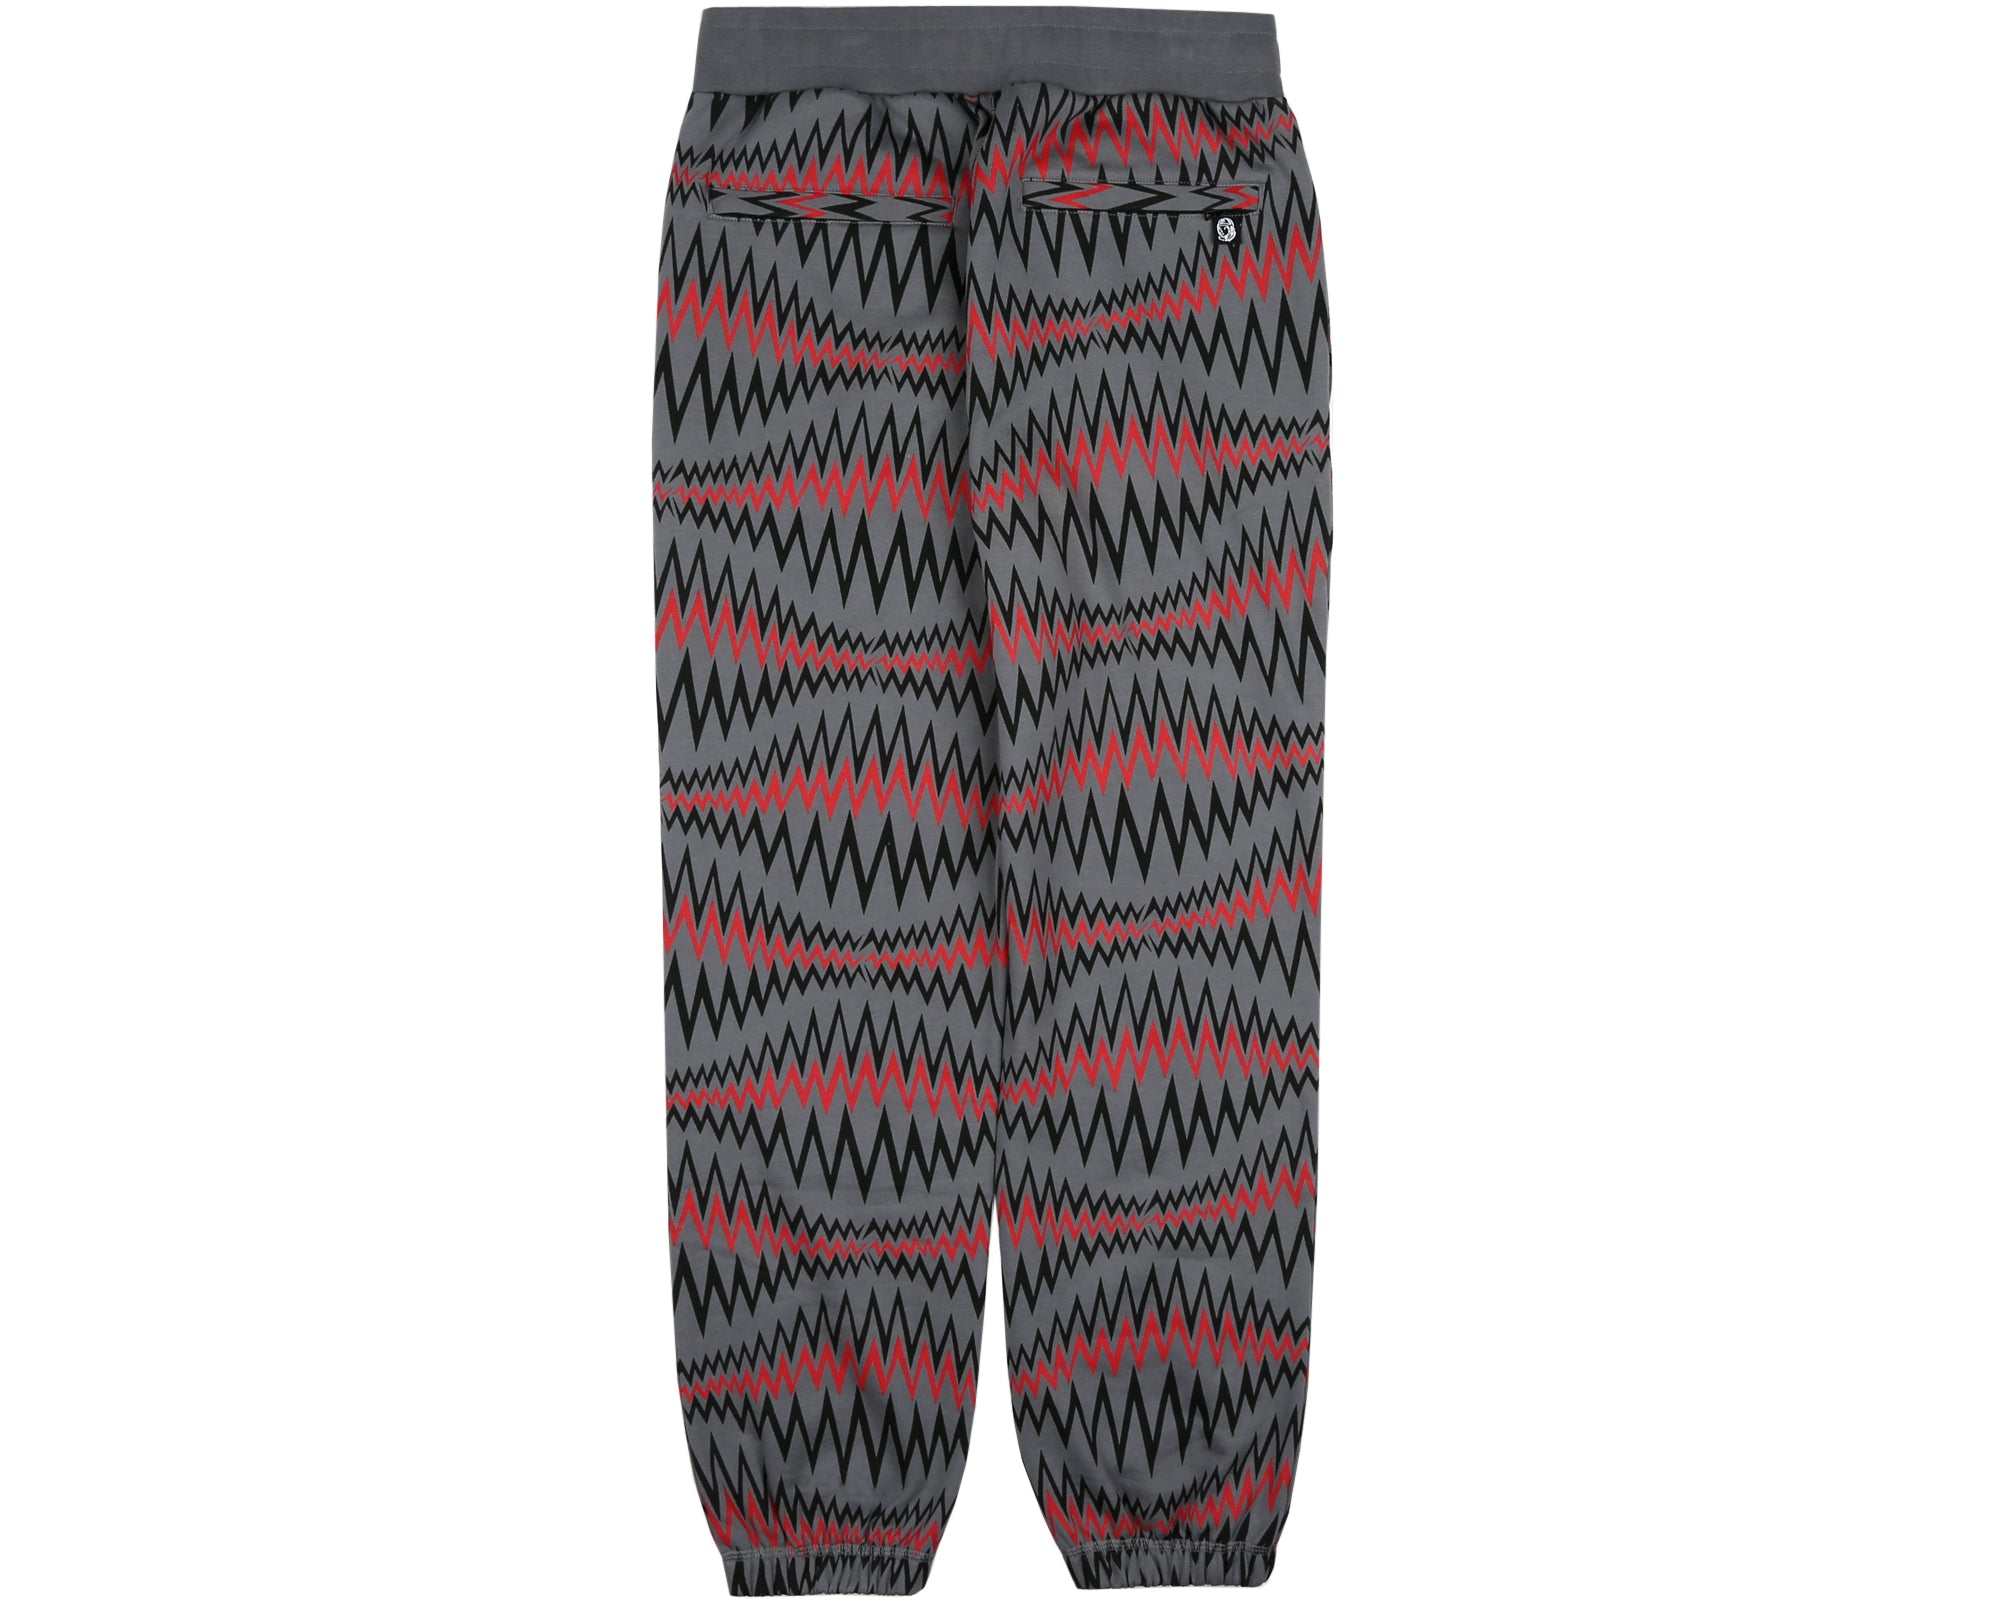 SOUNDWAVE SWEATPANT - GREY